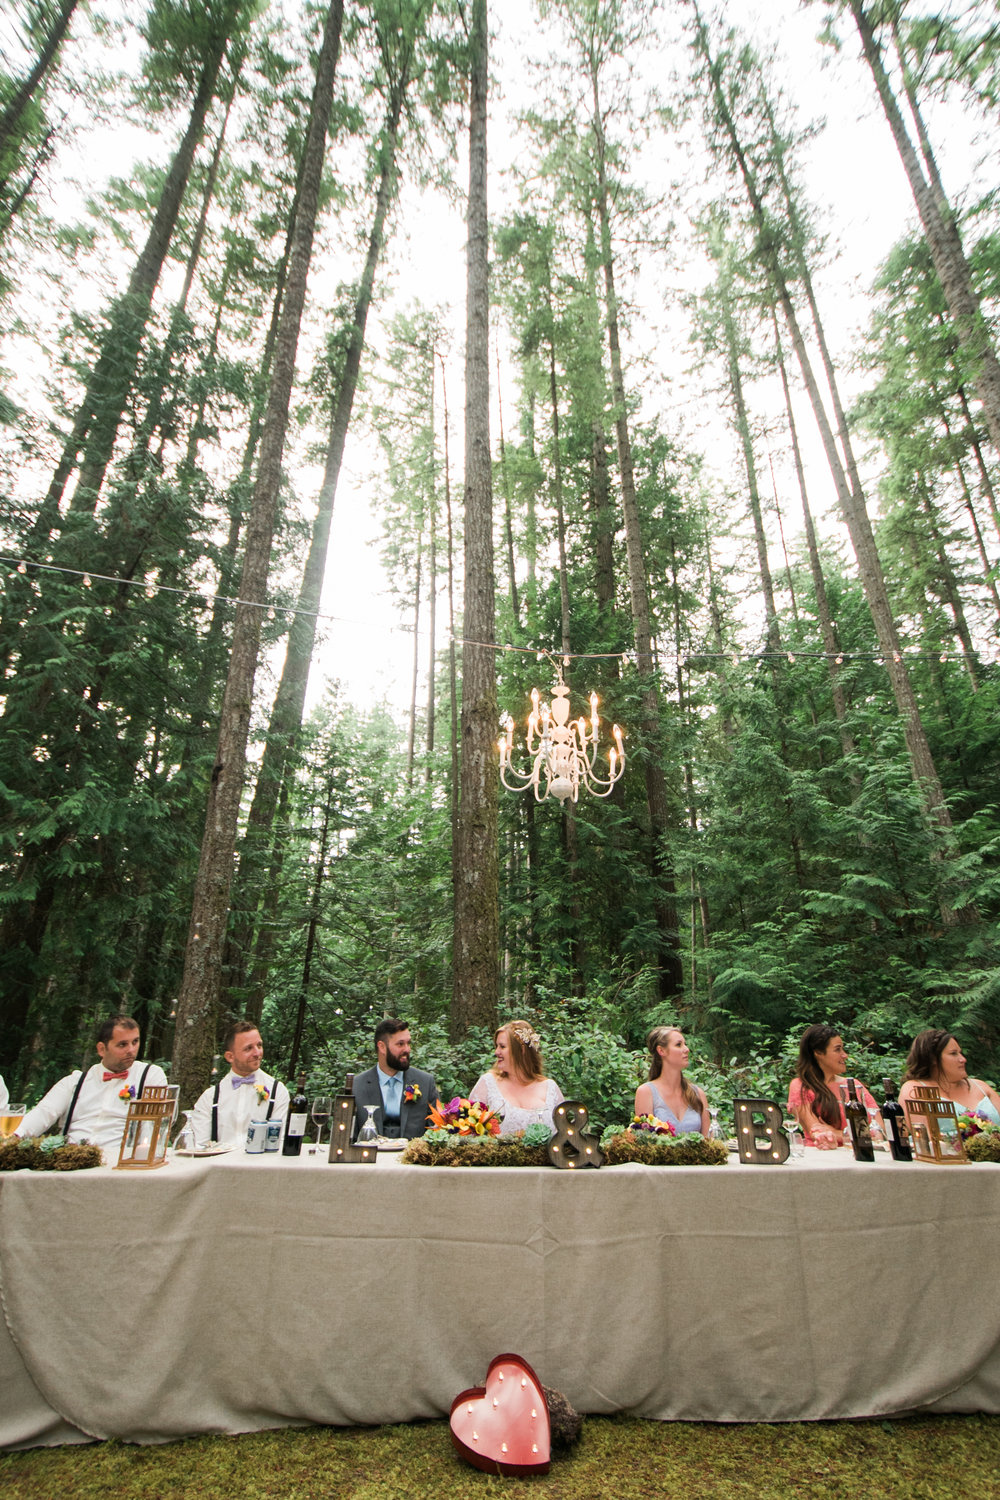 Forest themed wedding anyone?